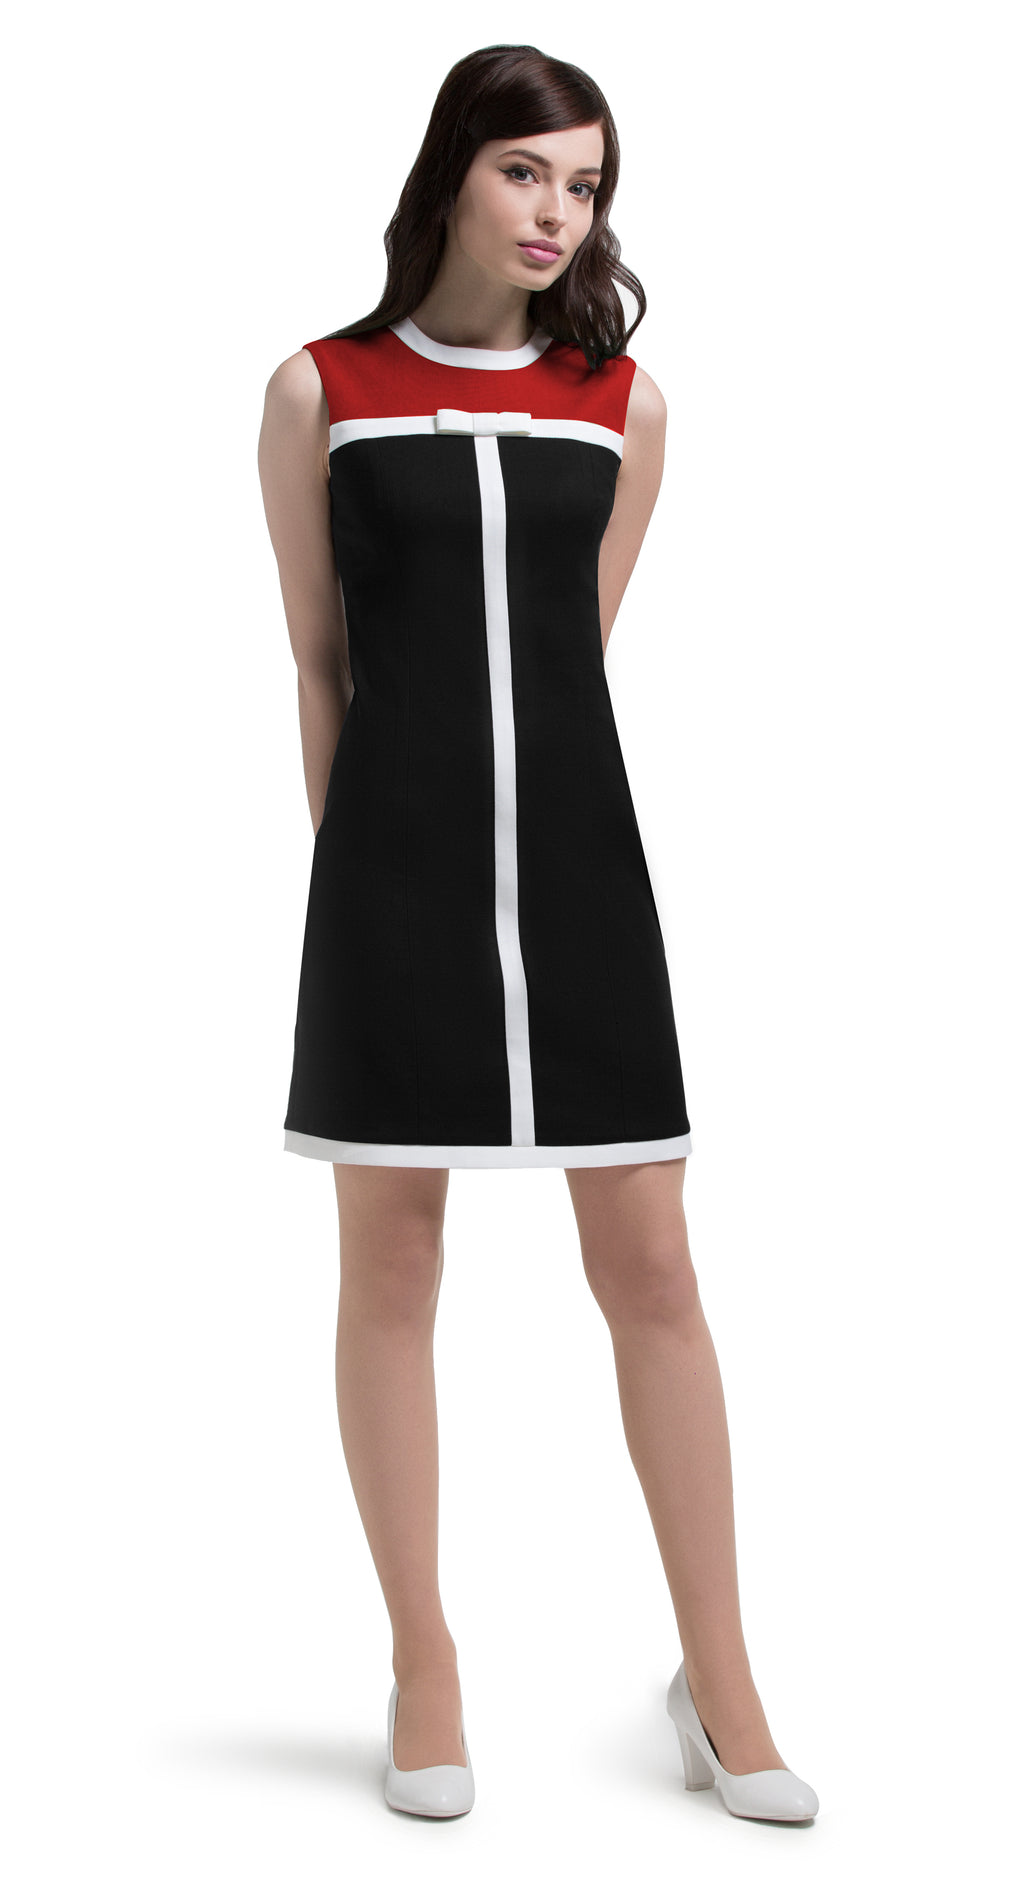 This slightly a-line Italian cotton dress has casual elegance and makes a confident cool immediate impression. The vintage aesthetic allows for the front top panel to work in a variety of colours complementing the dress whether opting for original black, contrasting red and black or contrasting green and black. Choose the bespoke option if you prefer sleeves or different colours.